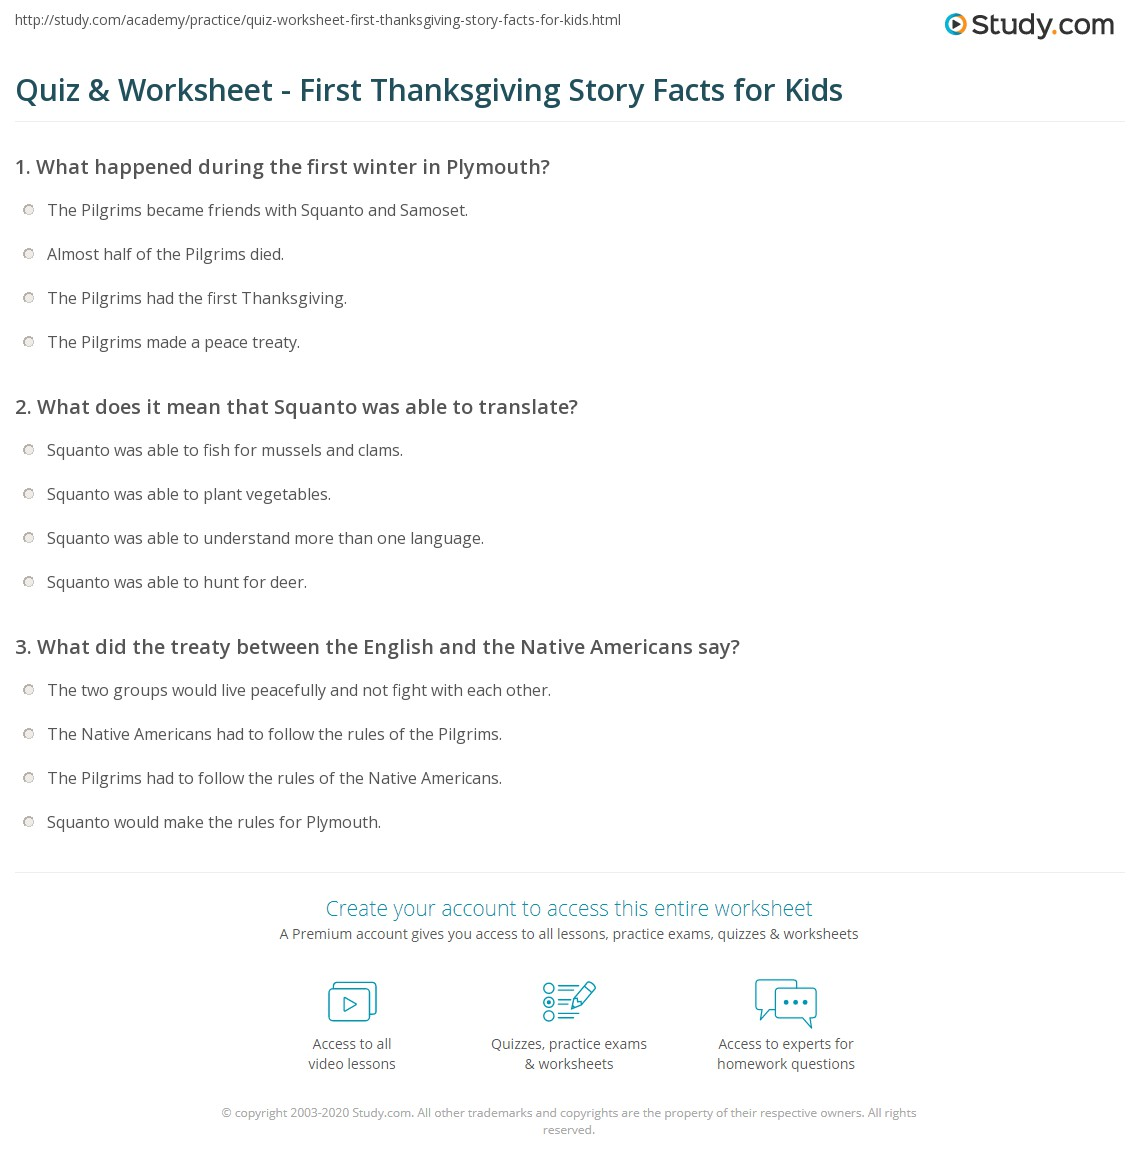 photo relating to Thanksgiving Quiz Printable called Quiz Worksheet - Very first Thanksgiving Tale Data for Little ones